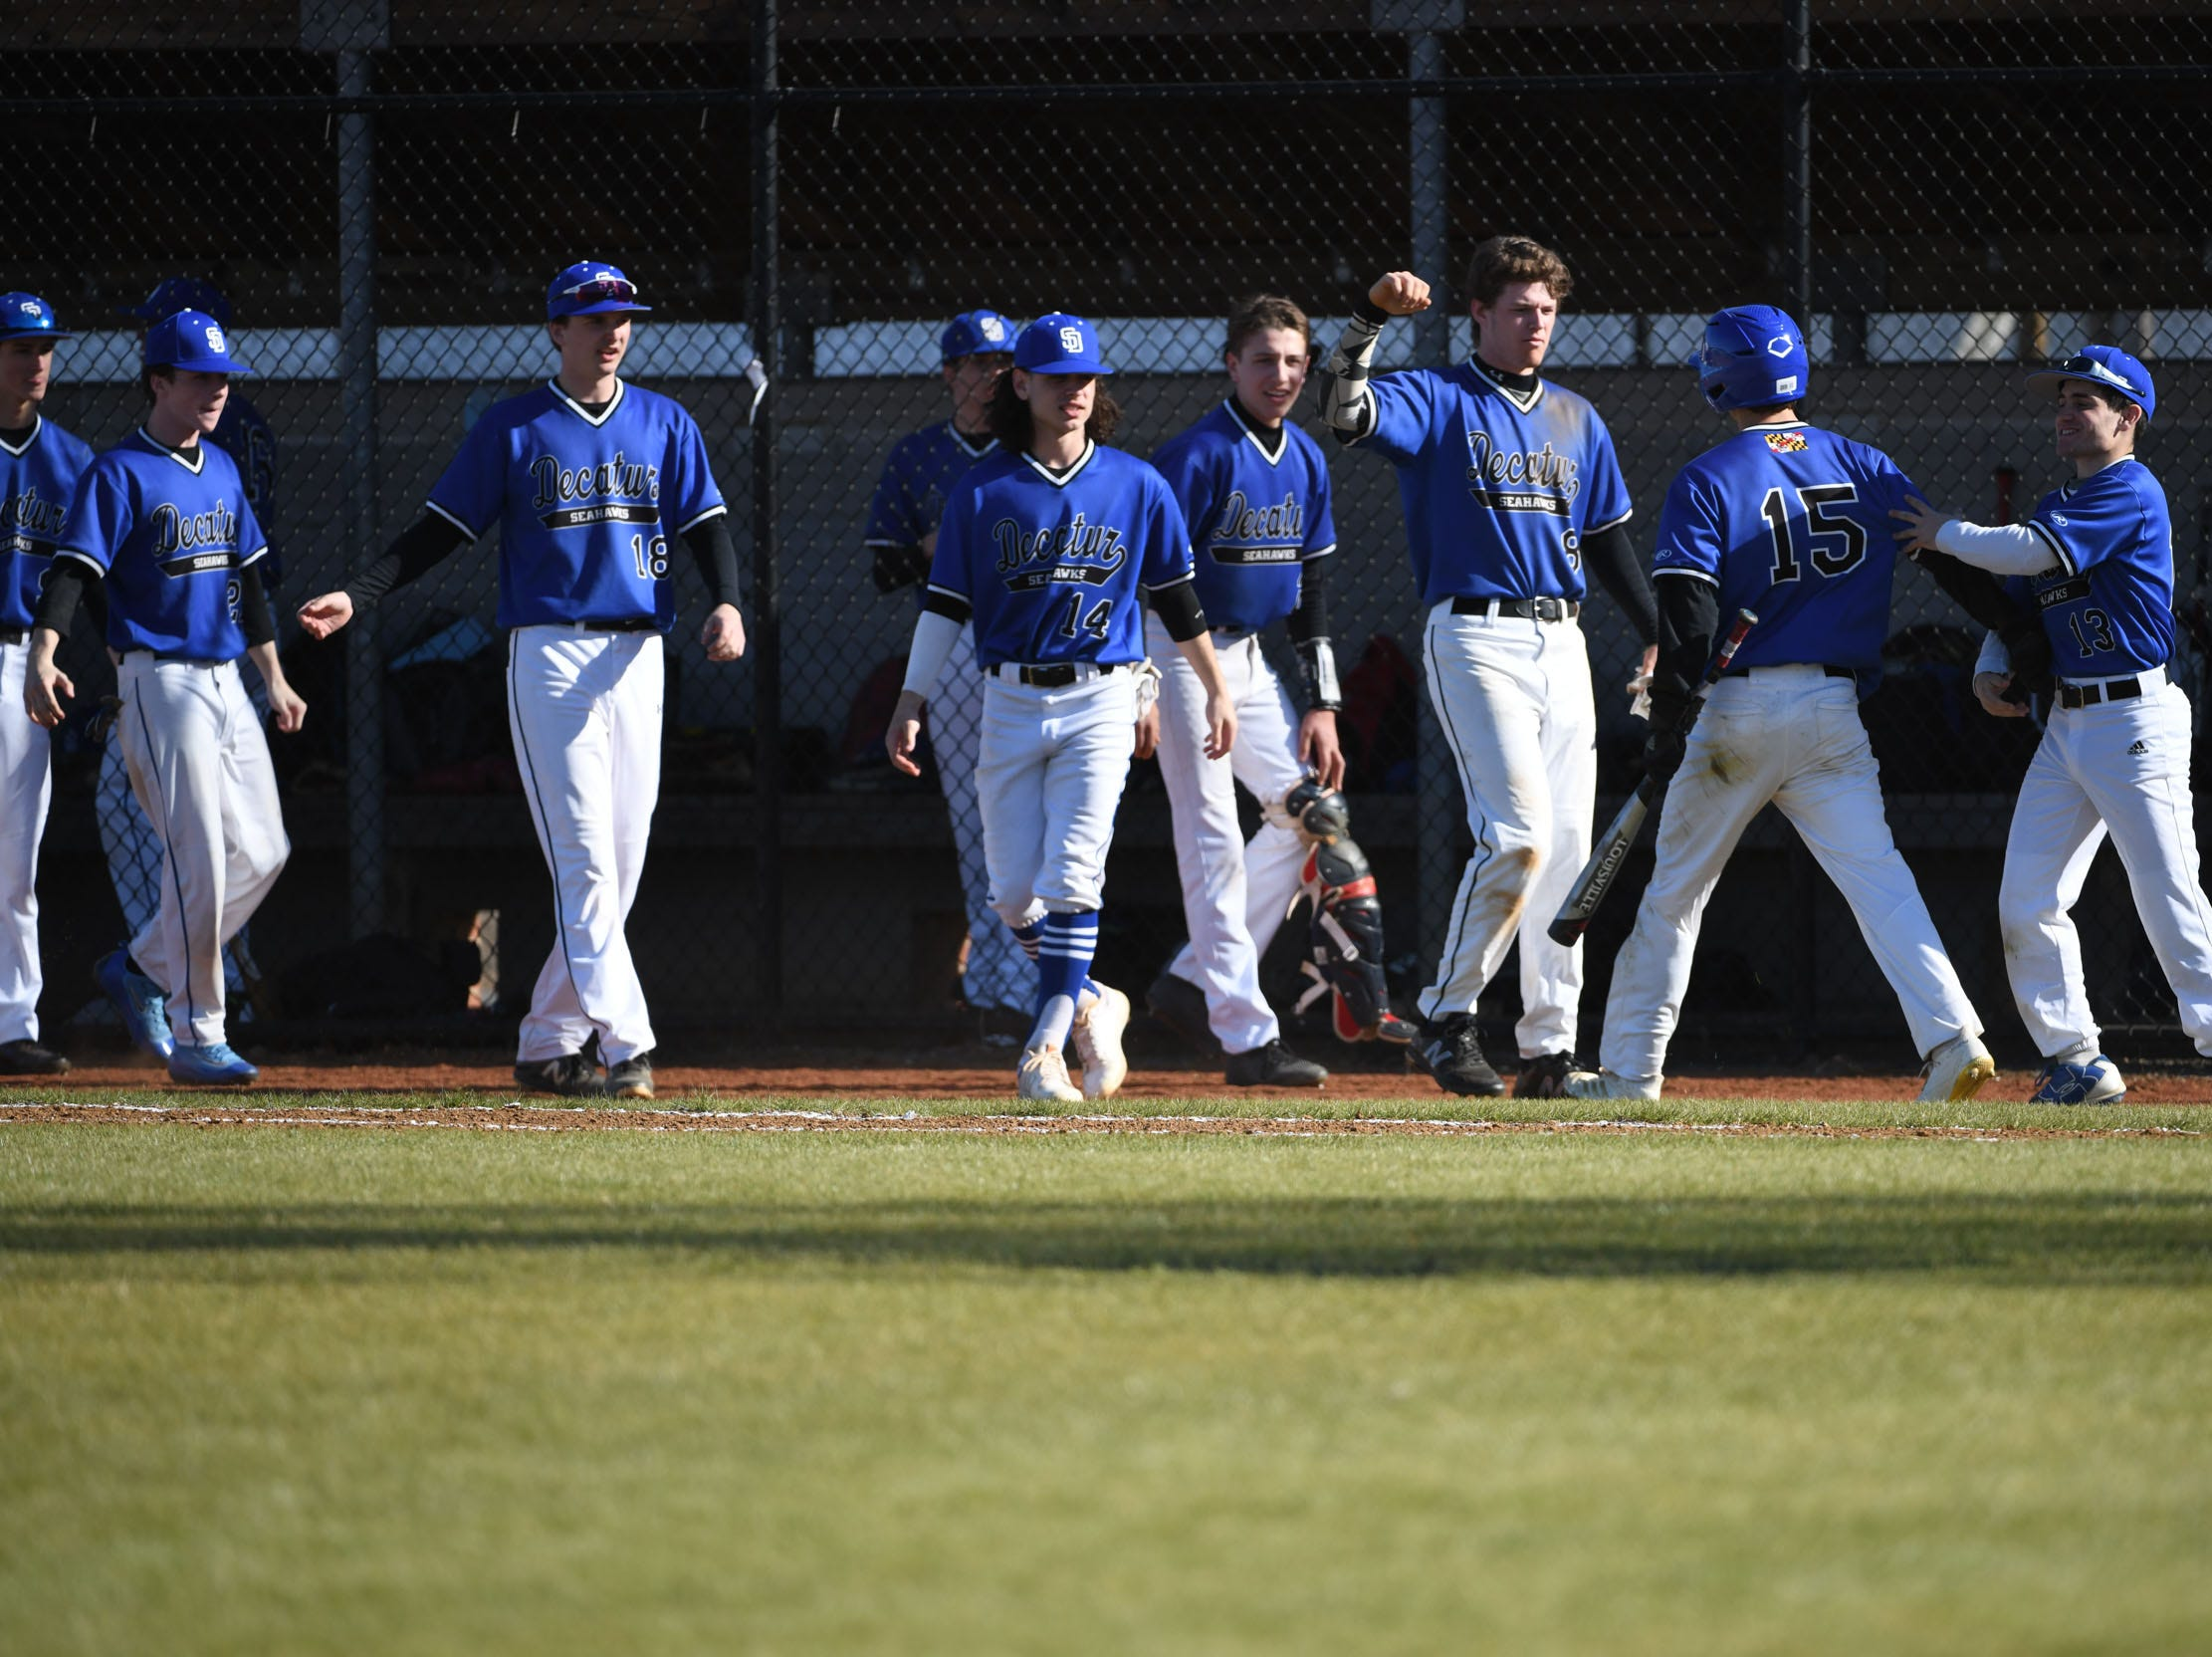 Stephen Decatur celebrates after scoring a run against Bennett on Thursday, March 28, 2019 in Salisbury, Md.